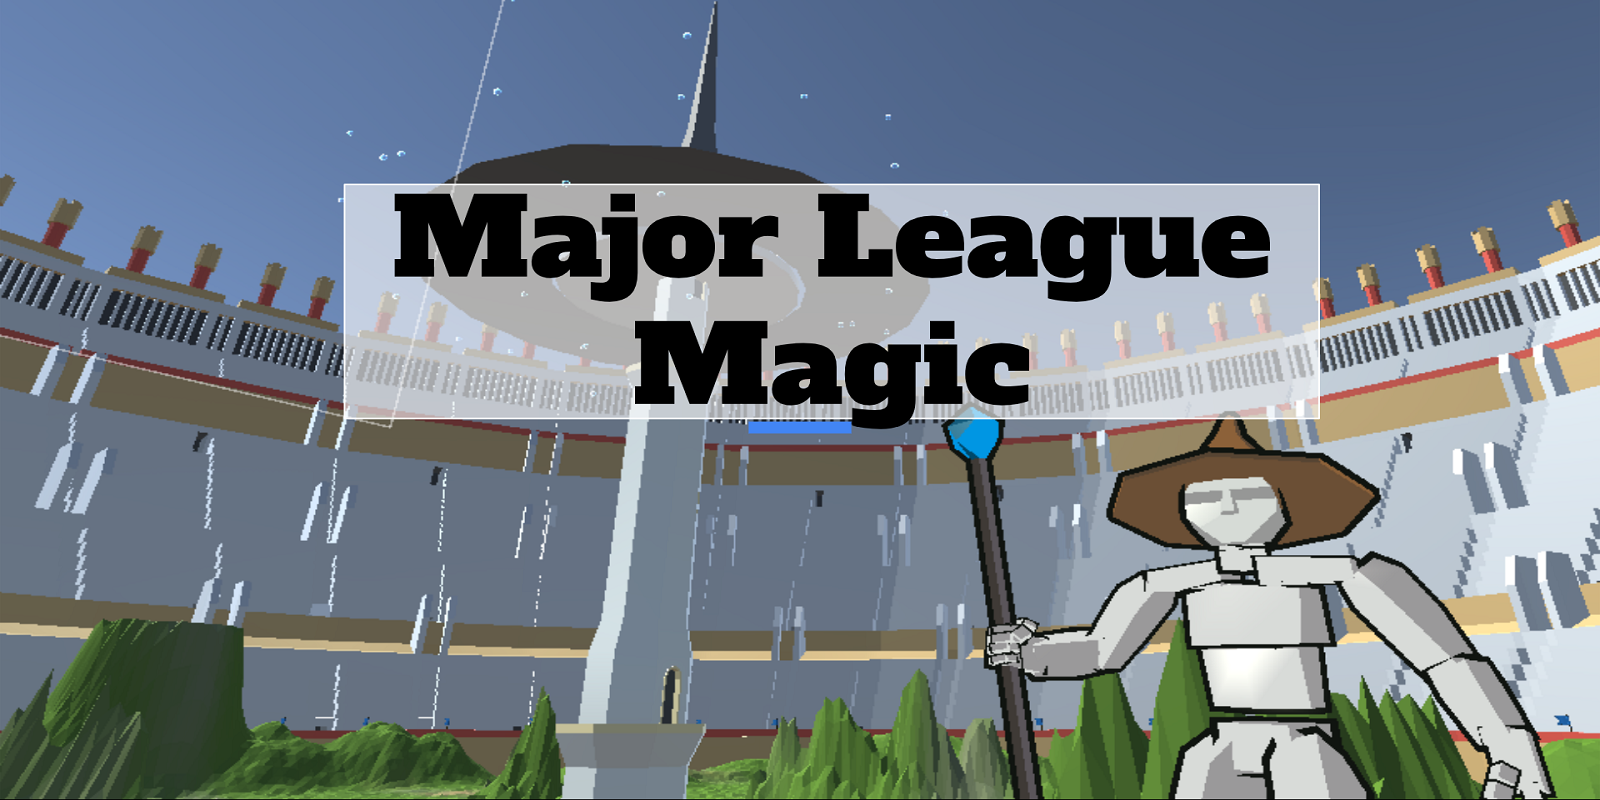 Major League Magic